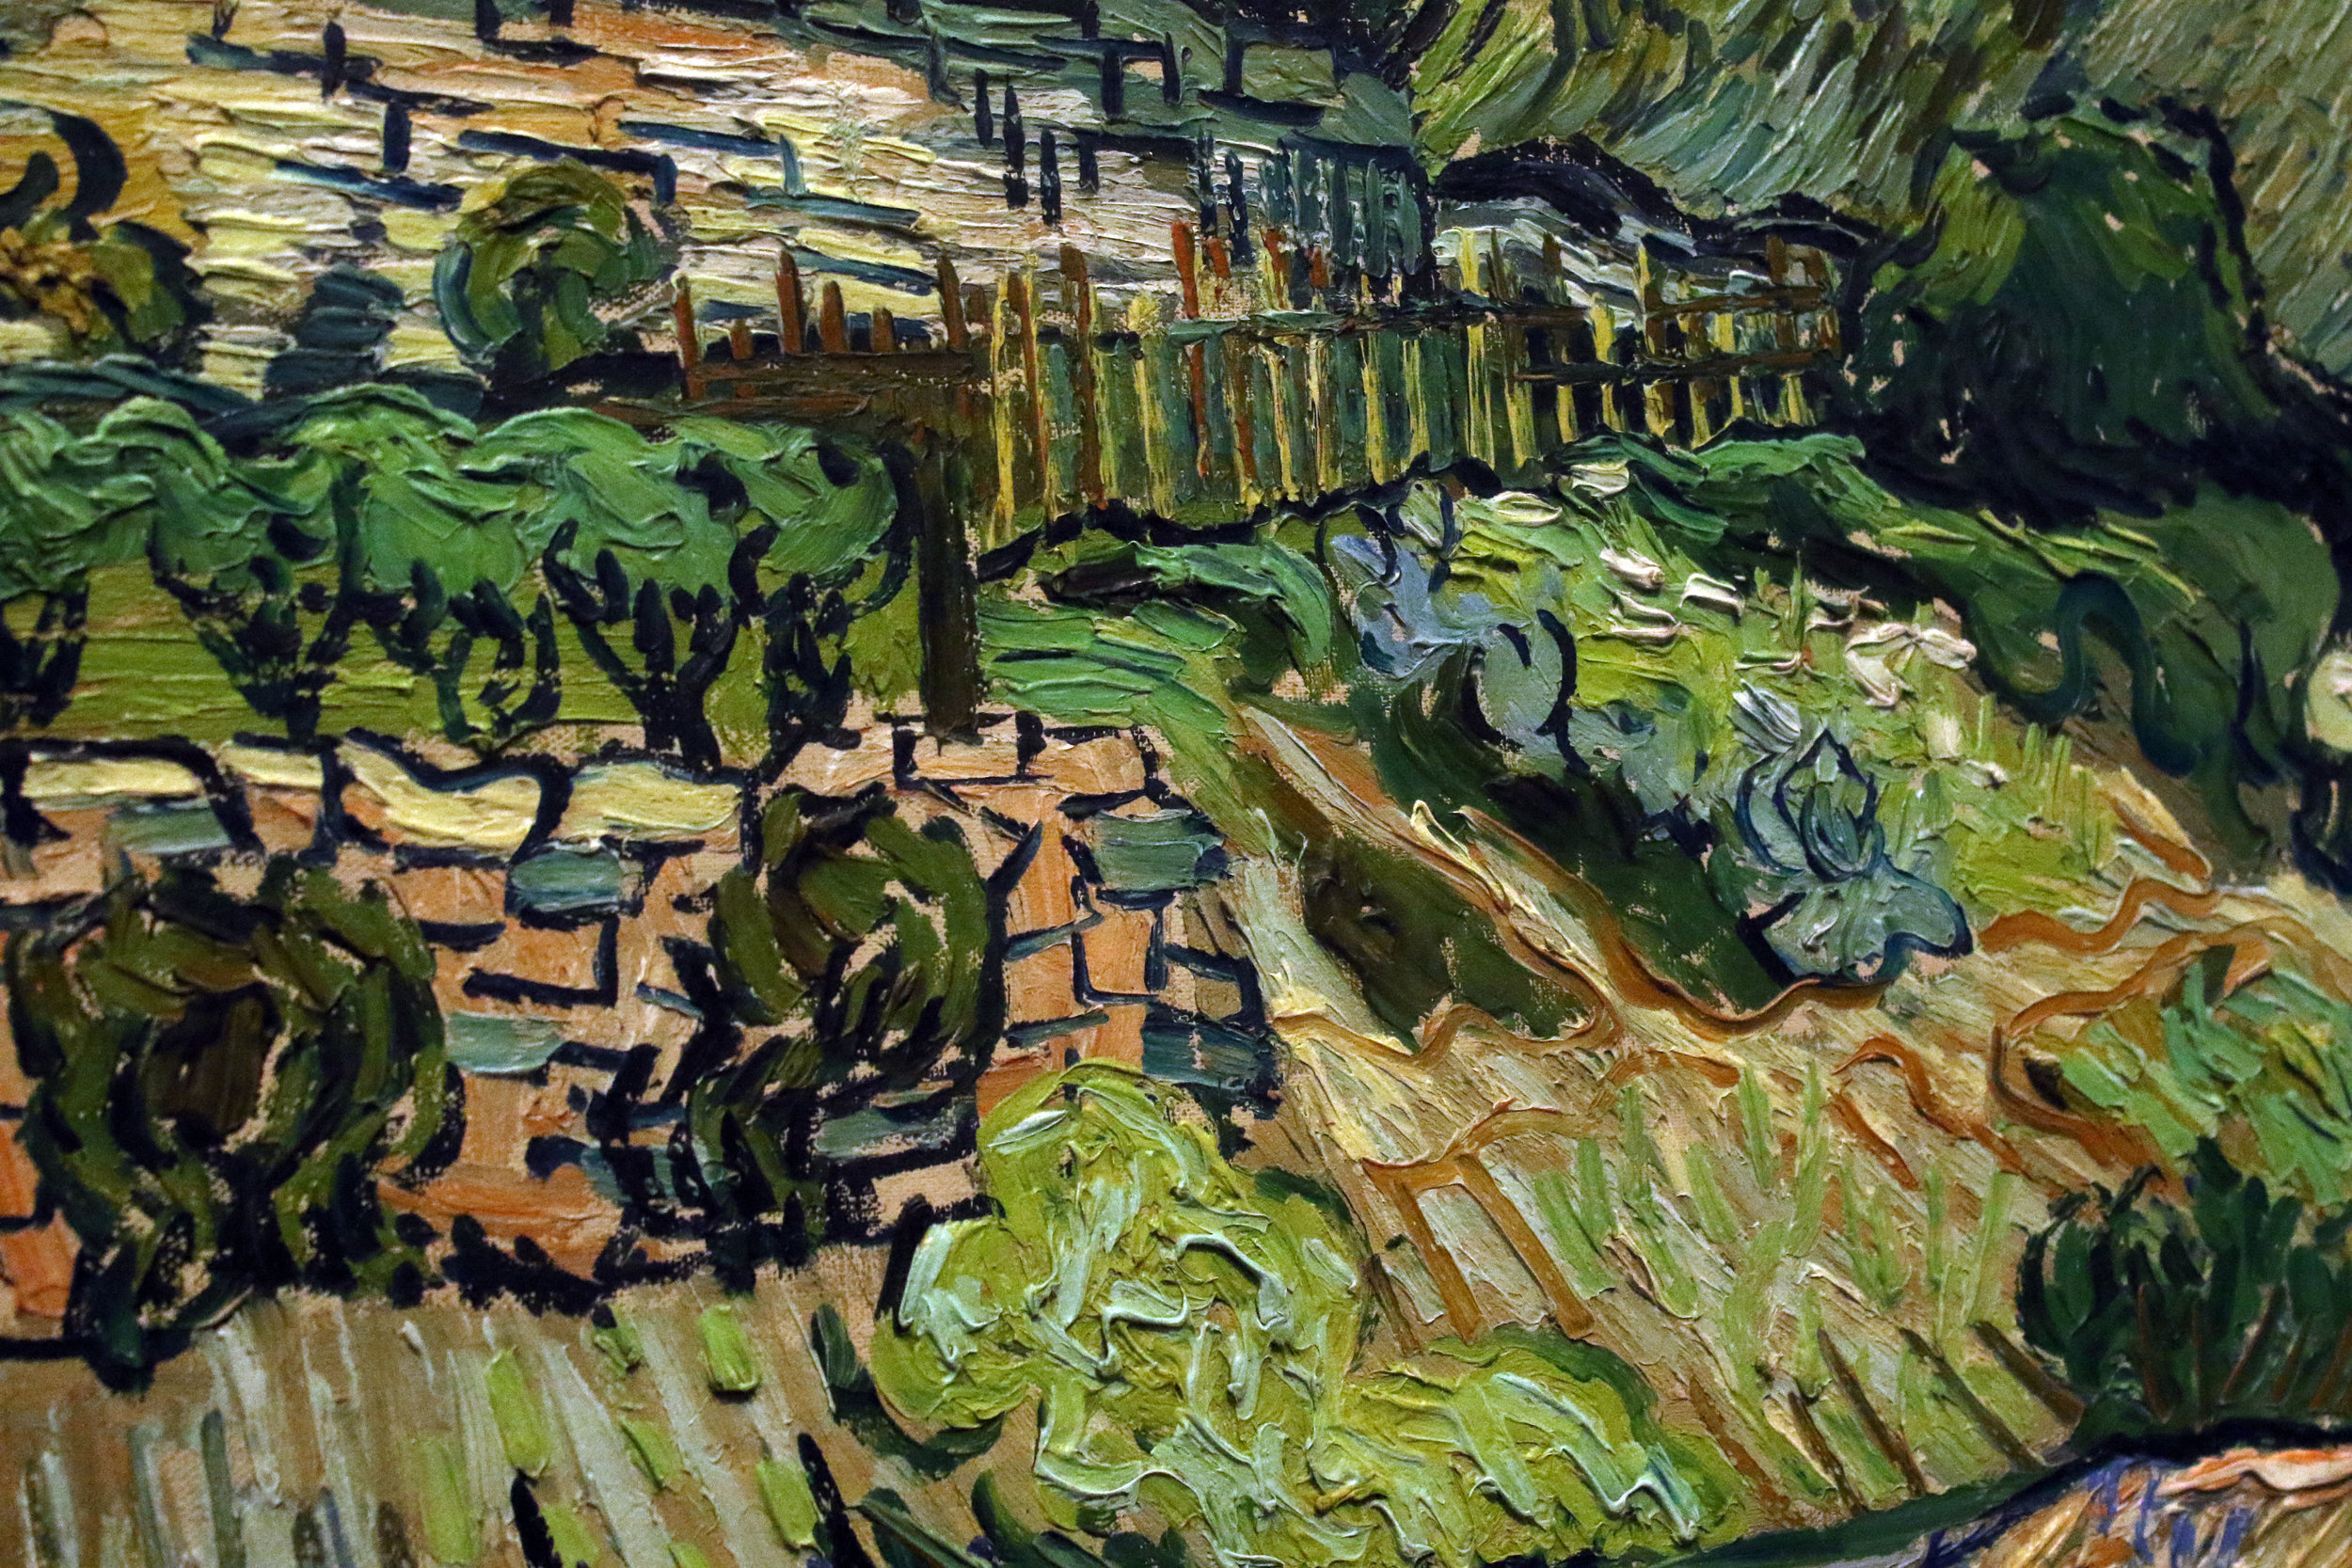 Detail shot of one of Van Gogh's paintings on display at the Musee d'Orsay